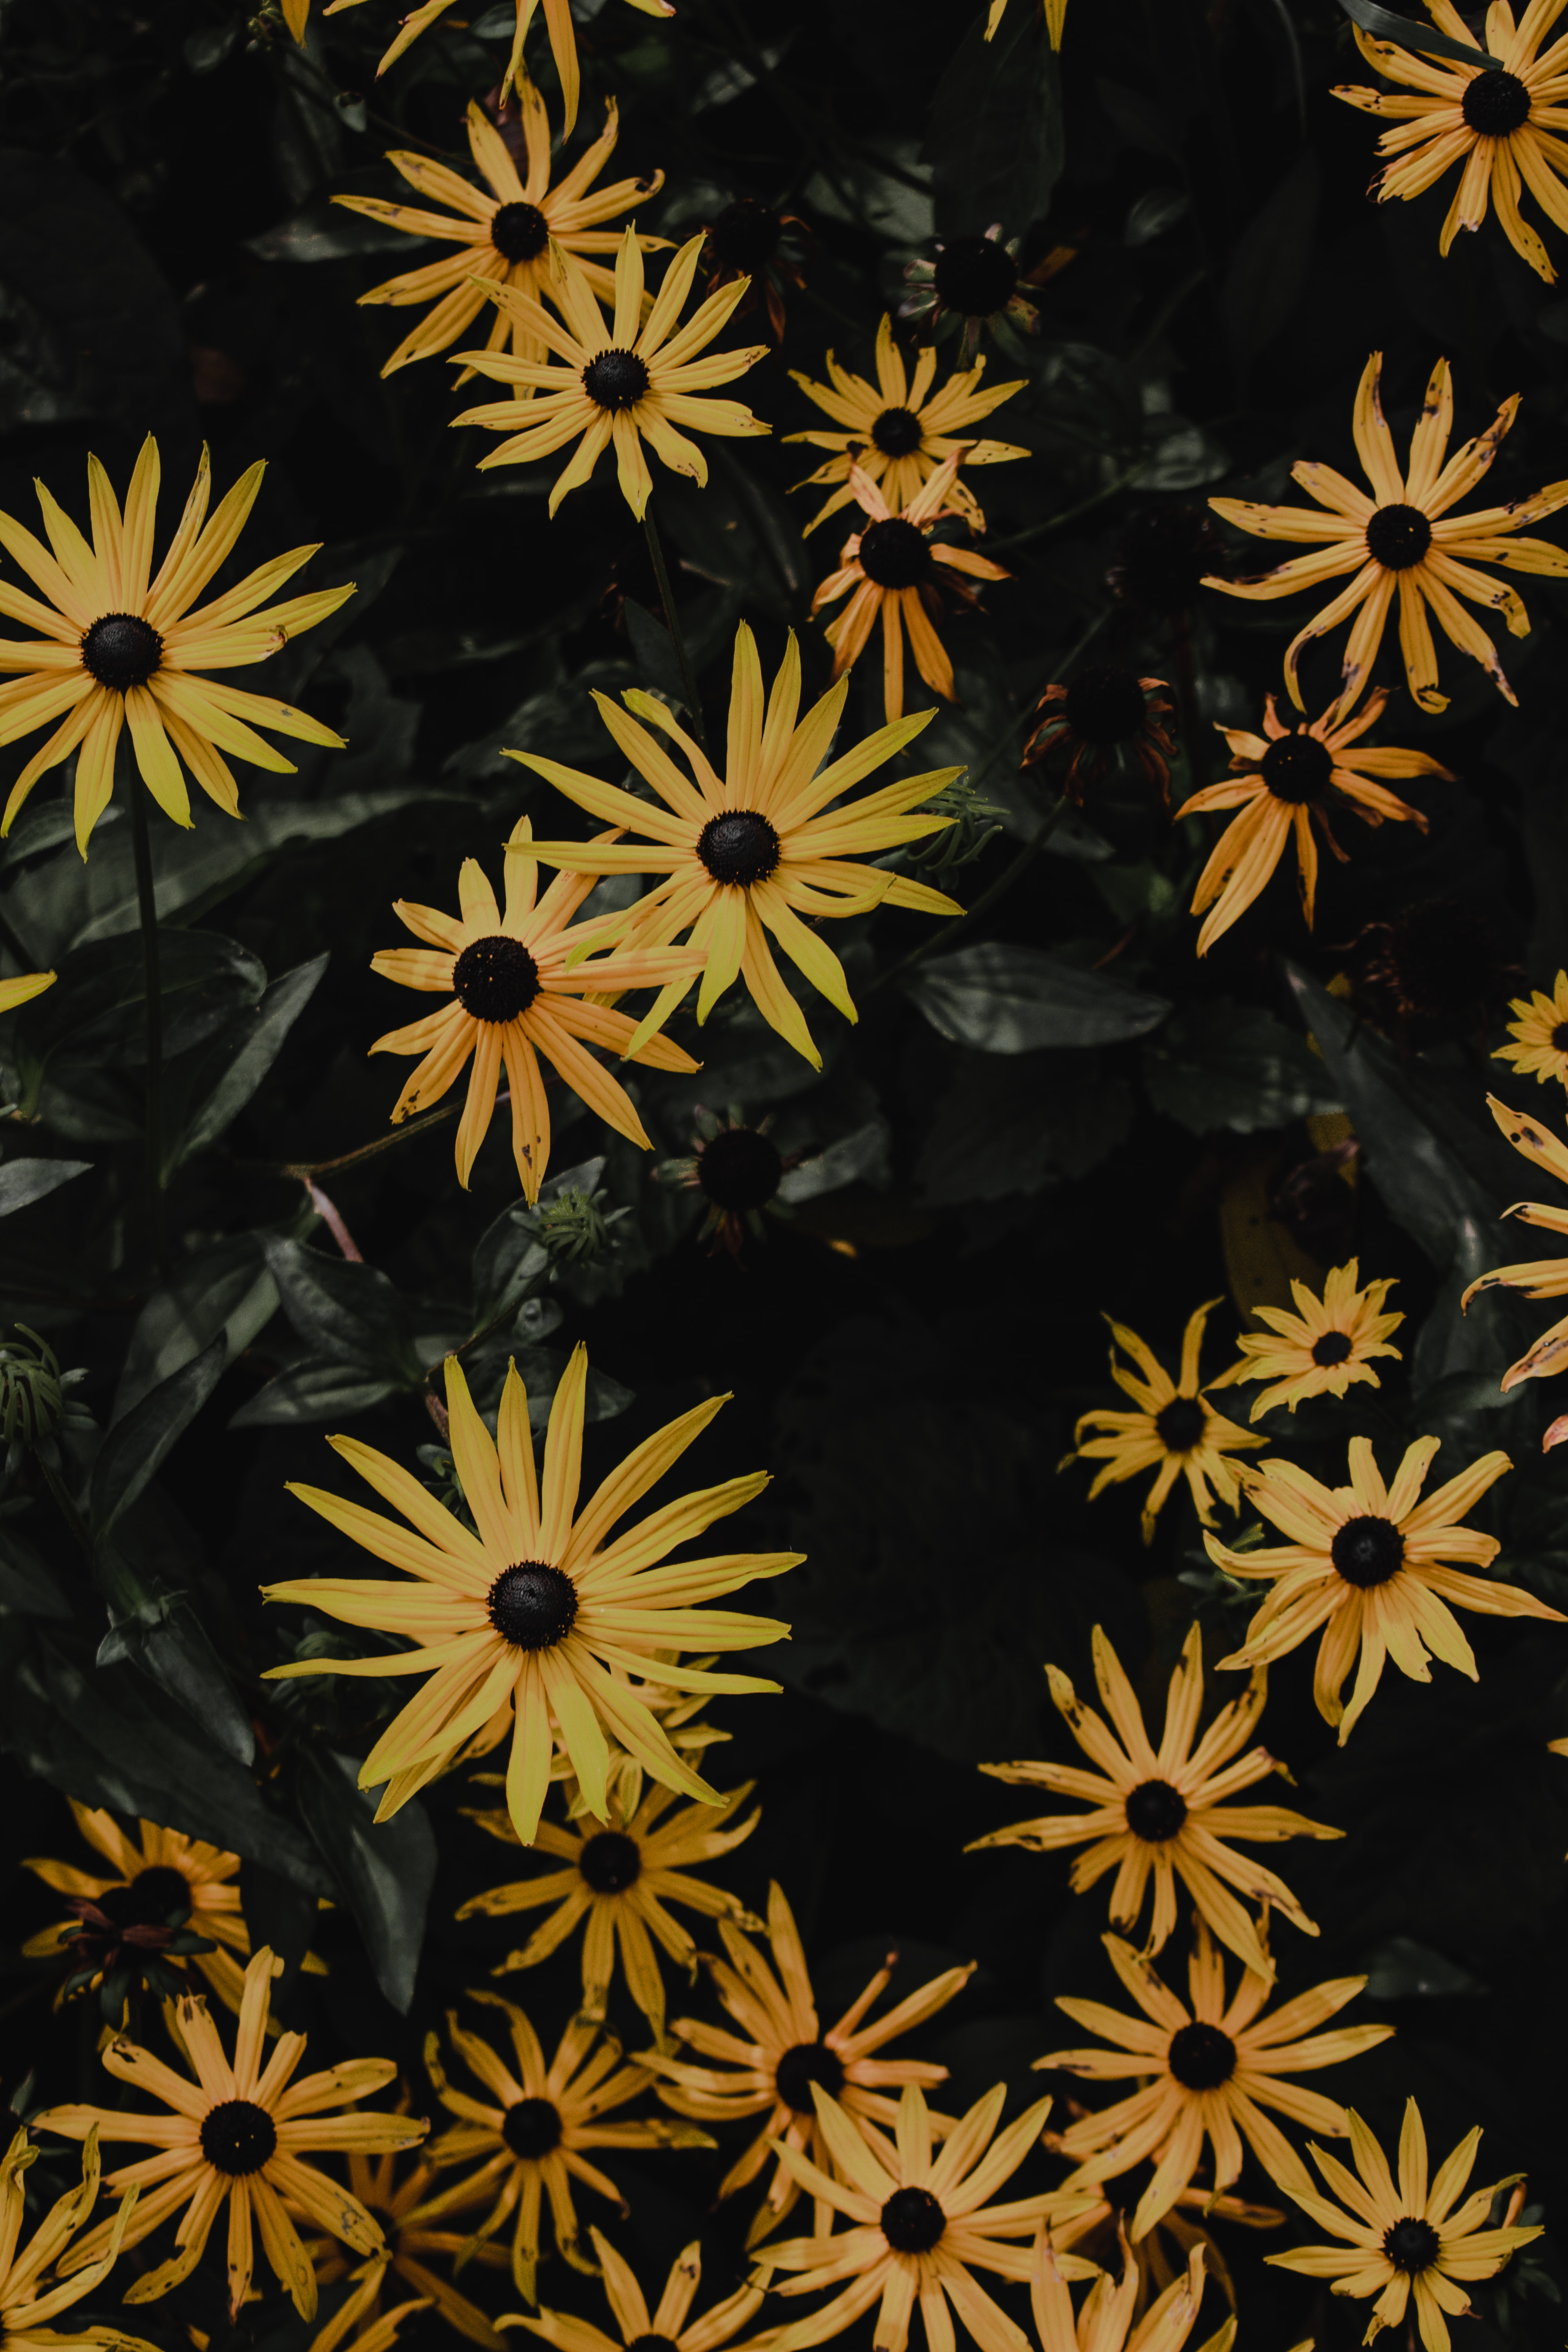 133090 download wallpaper Flowers, Chamomile, Camomile, Flower, Petals screensavers and pictures for free